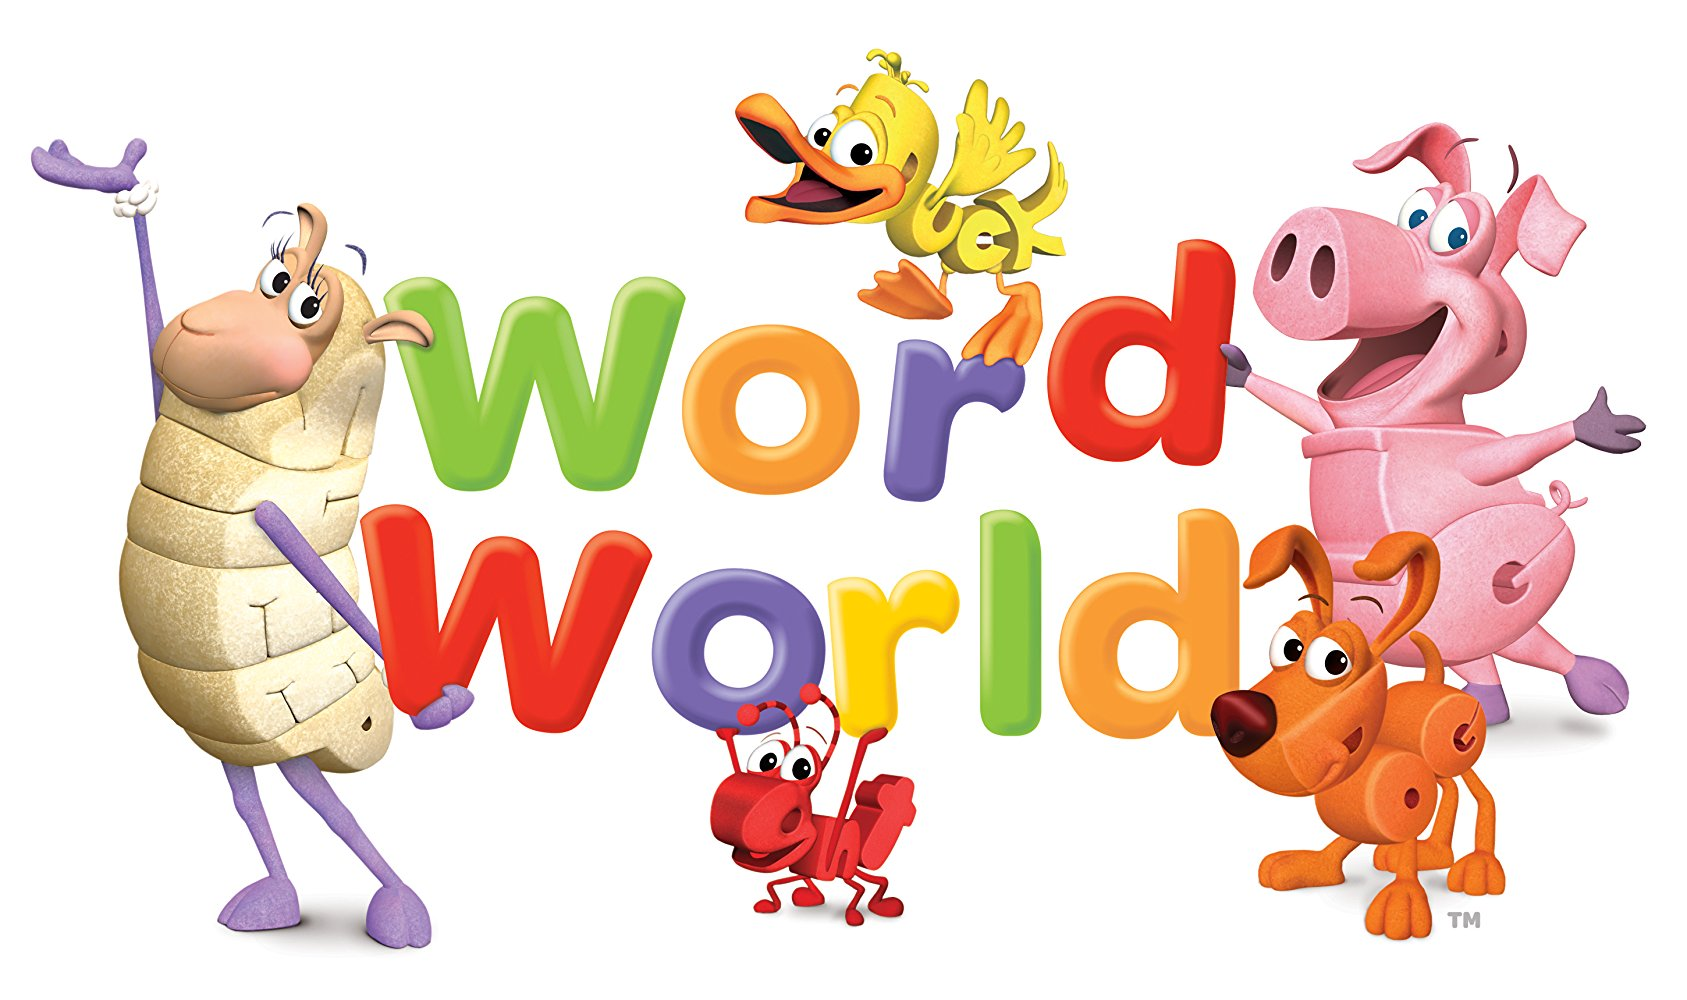 WordWorld